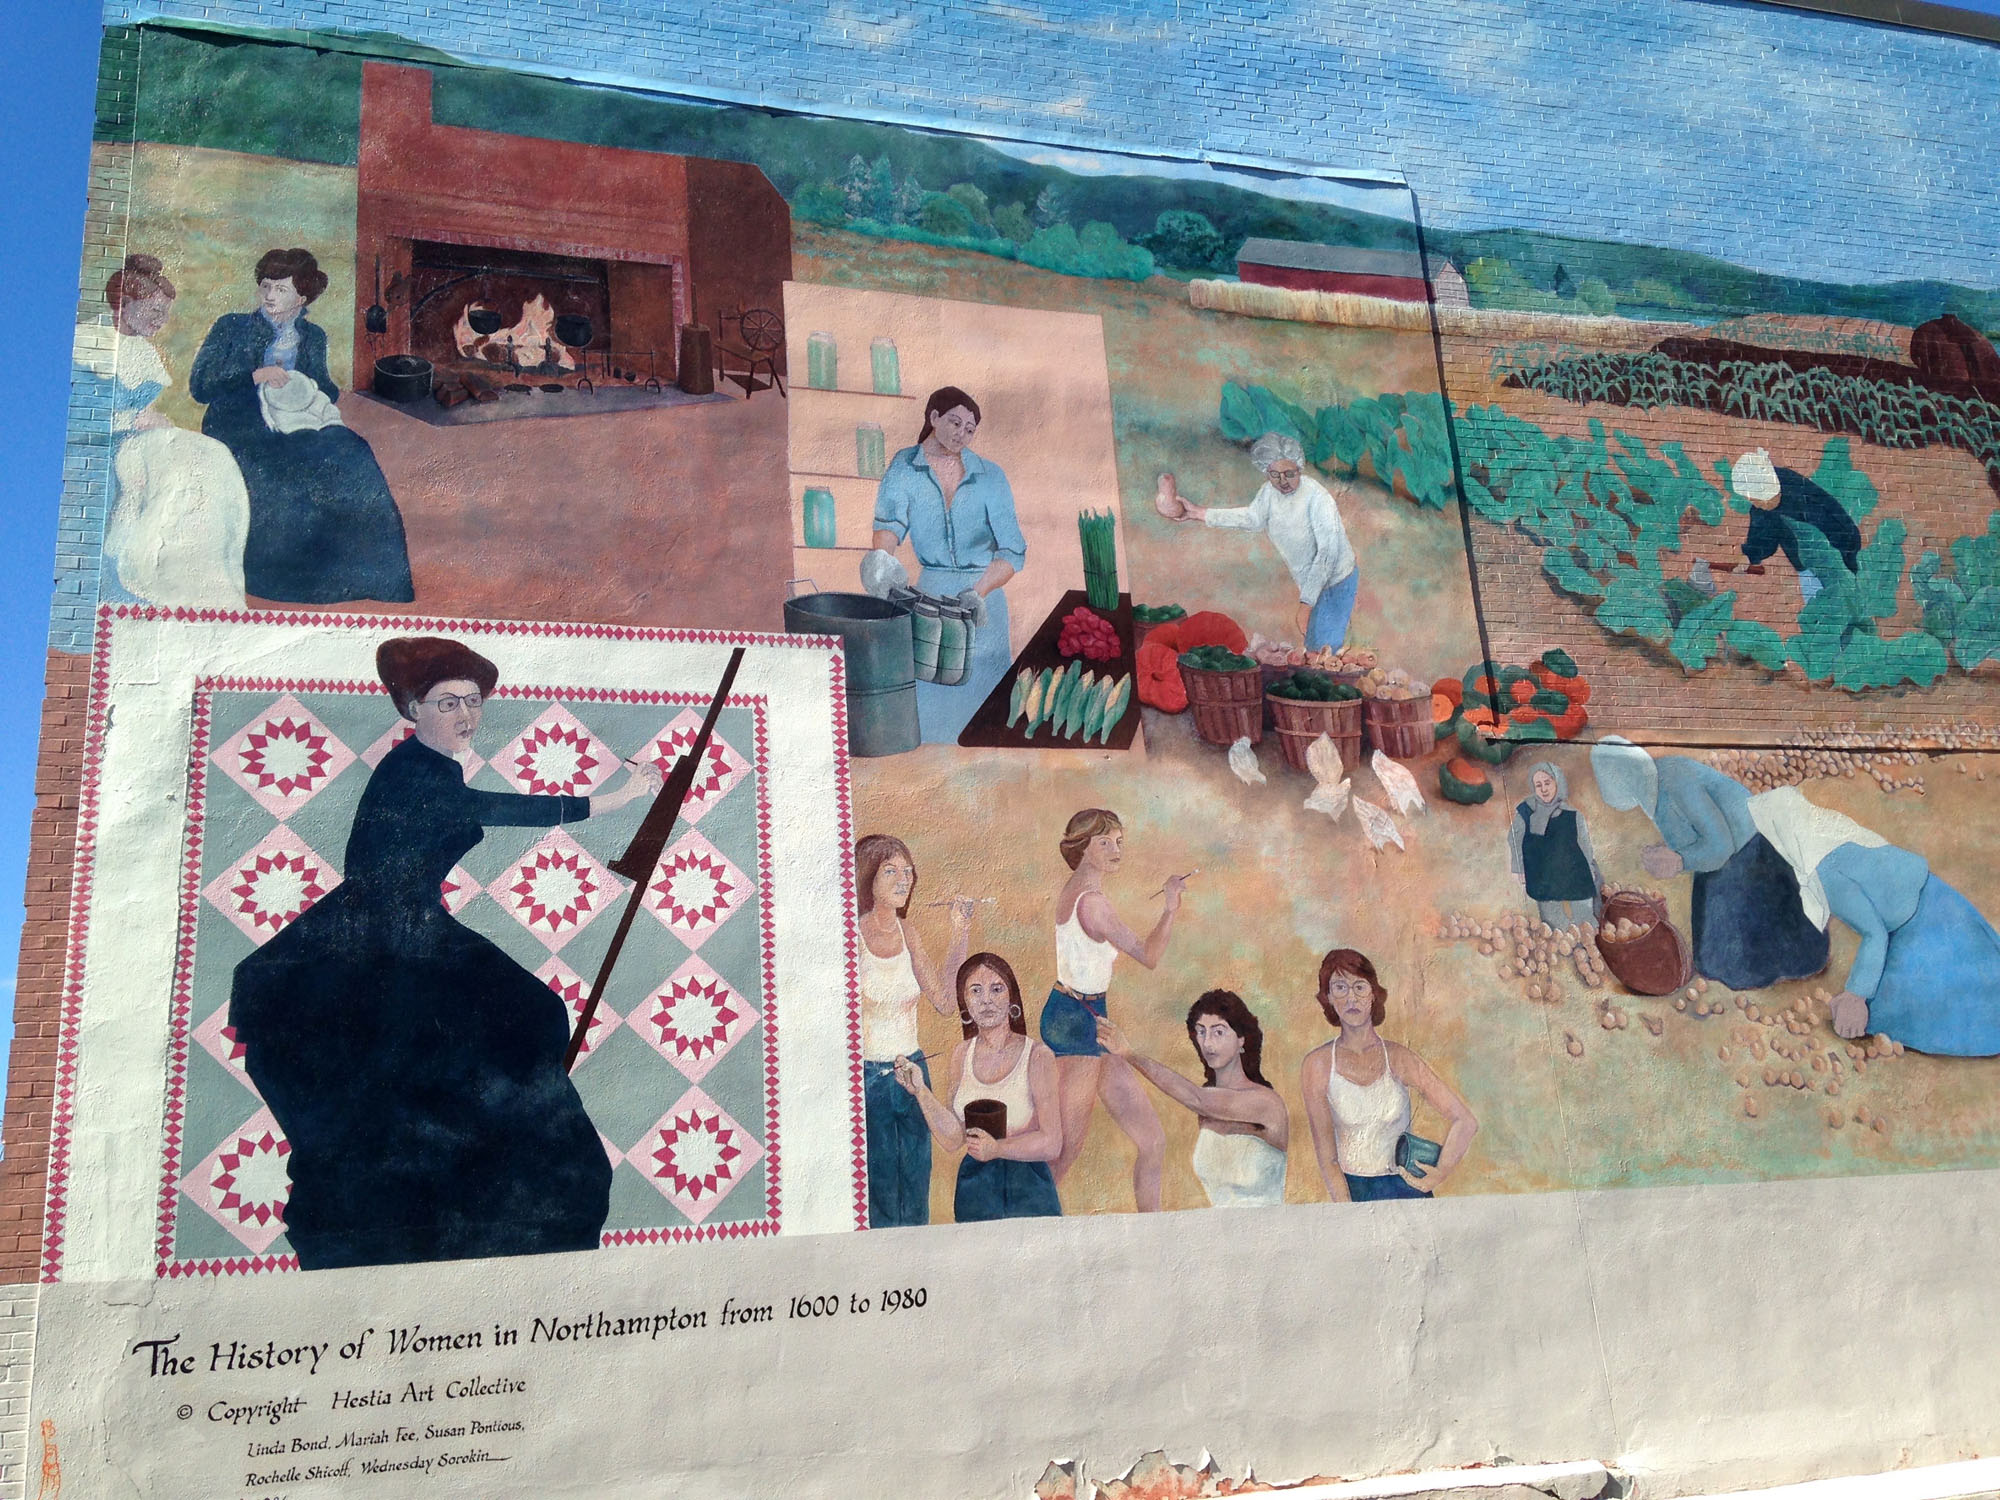 Women s history mural in massachusetts around and about for Mural history